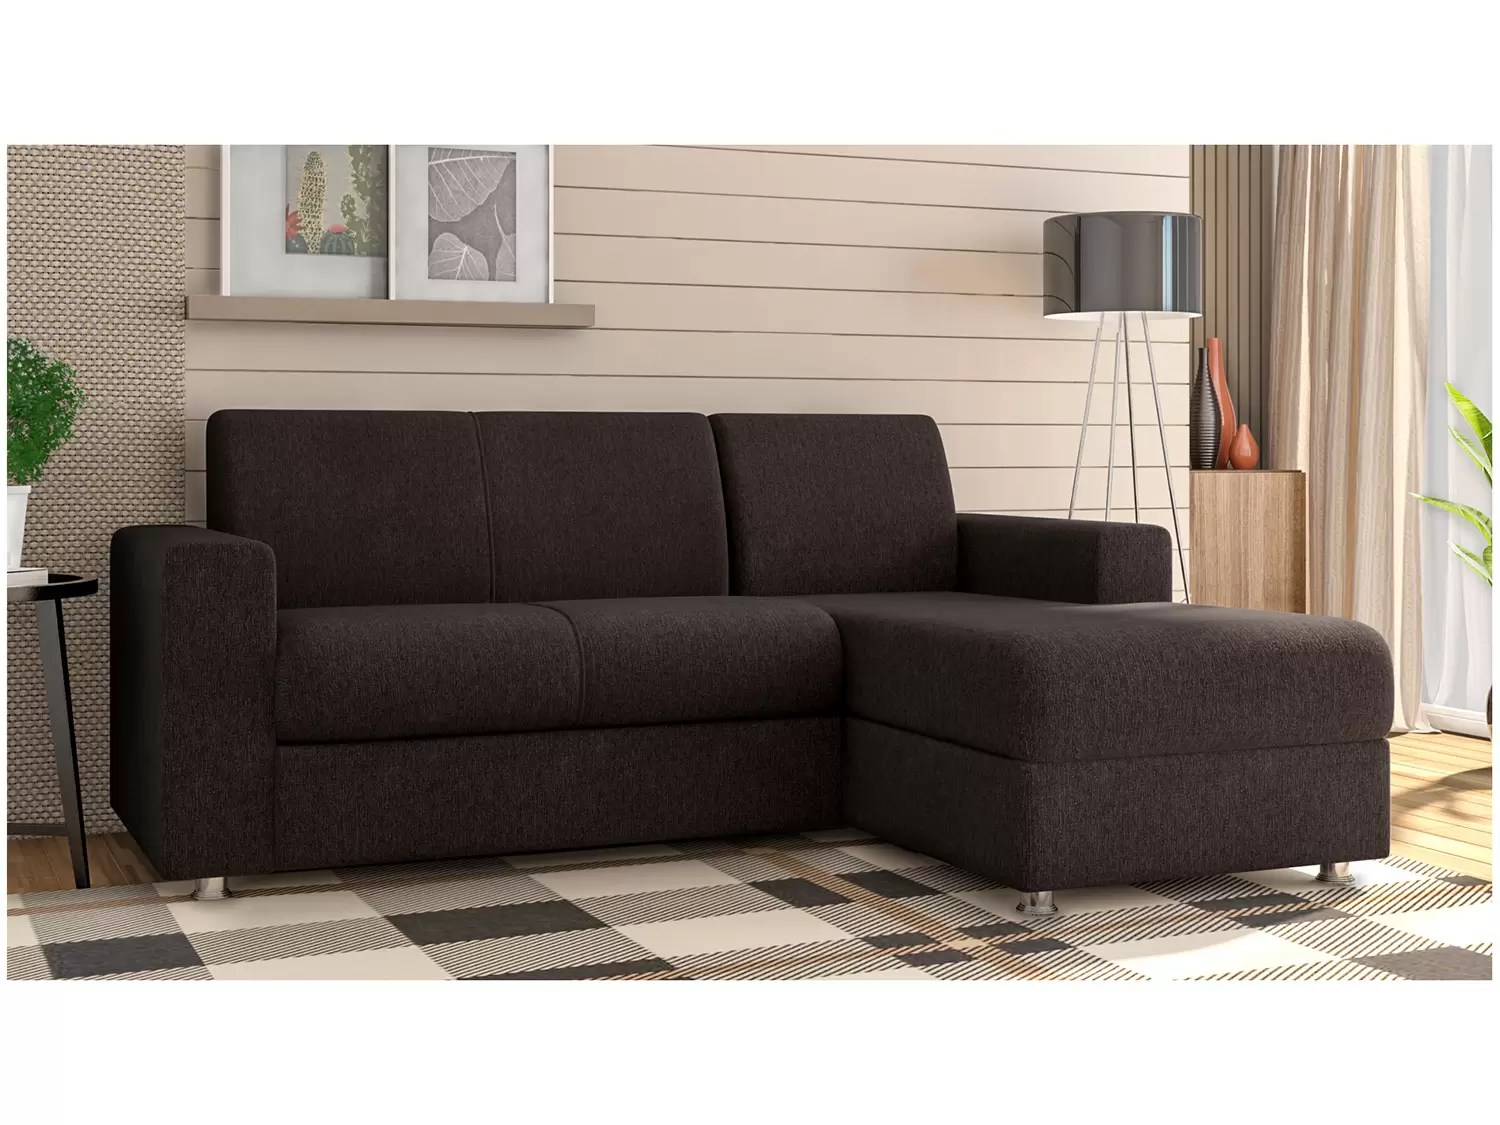 chenille sectional sofas with chaise peggy sofa west elm sofá 2 lugares roma american comfort